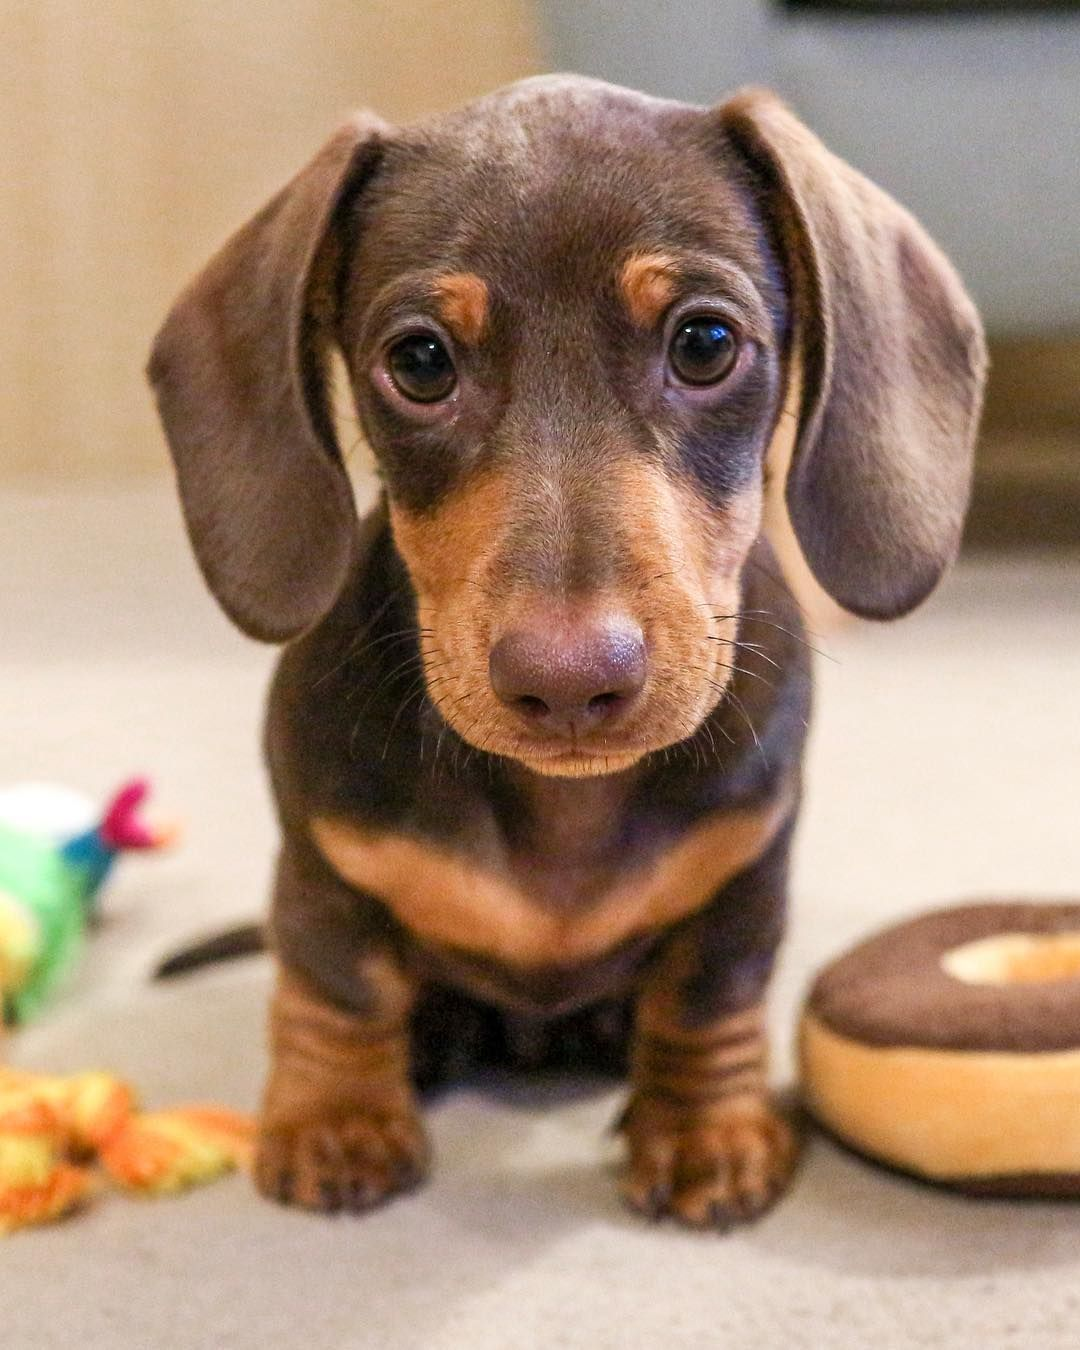 Dachshund Puppy If You Love Dachshunds Visit Our Blog To Find The Best Products And Accessories For Hounds And Daschund Puppies Dachshund Breed Clever Dog